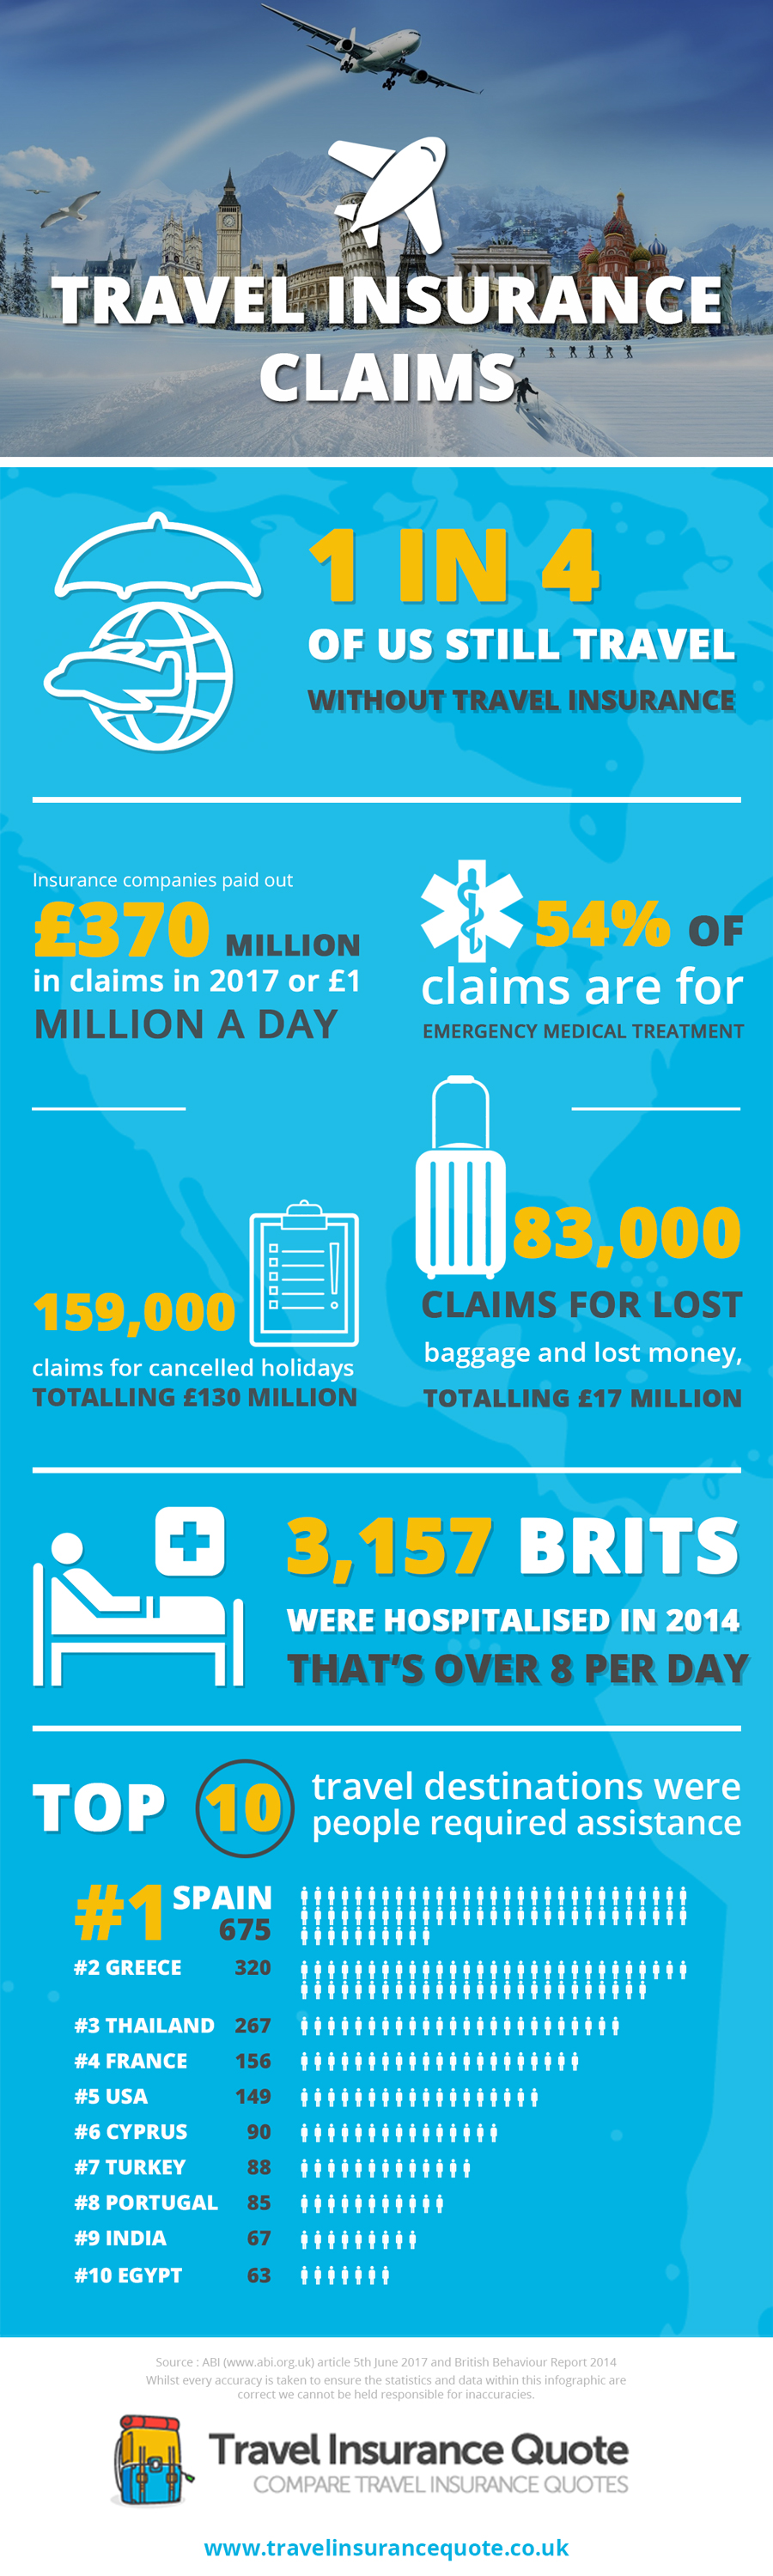 Why Travel Insurance Makes Sense - Infographic